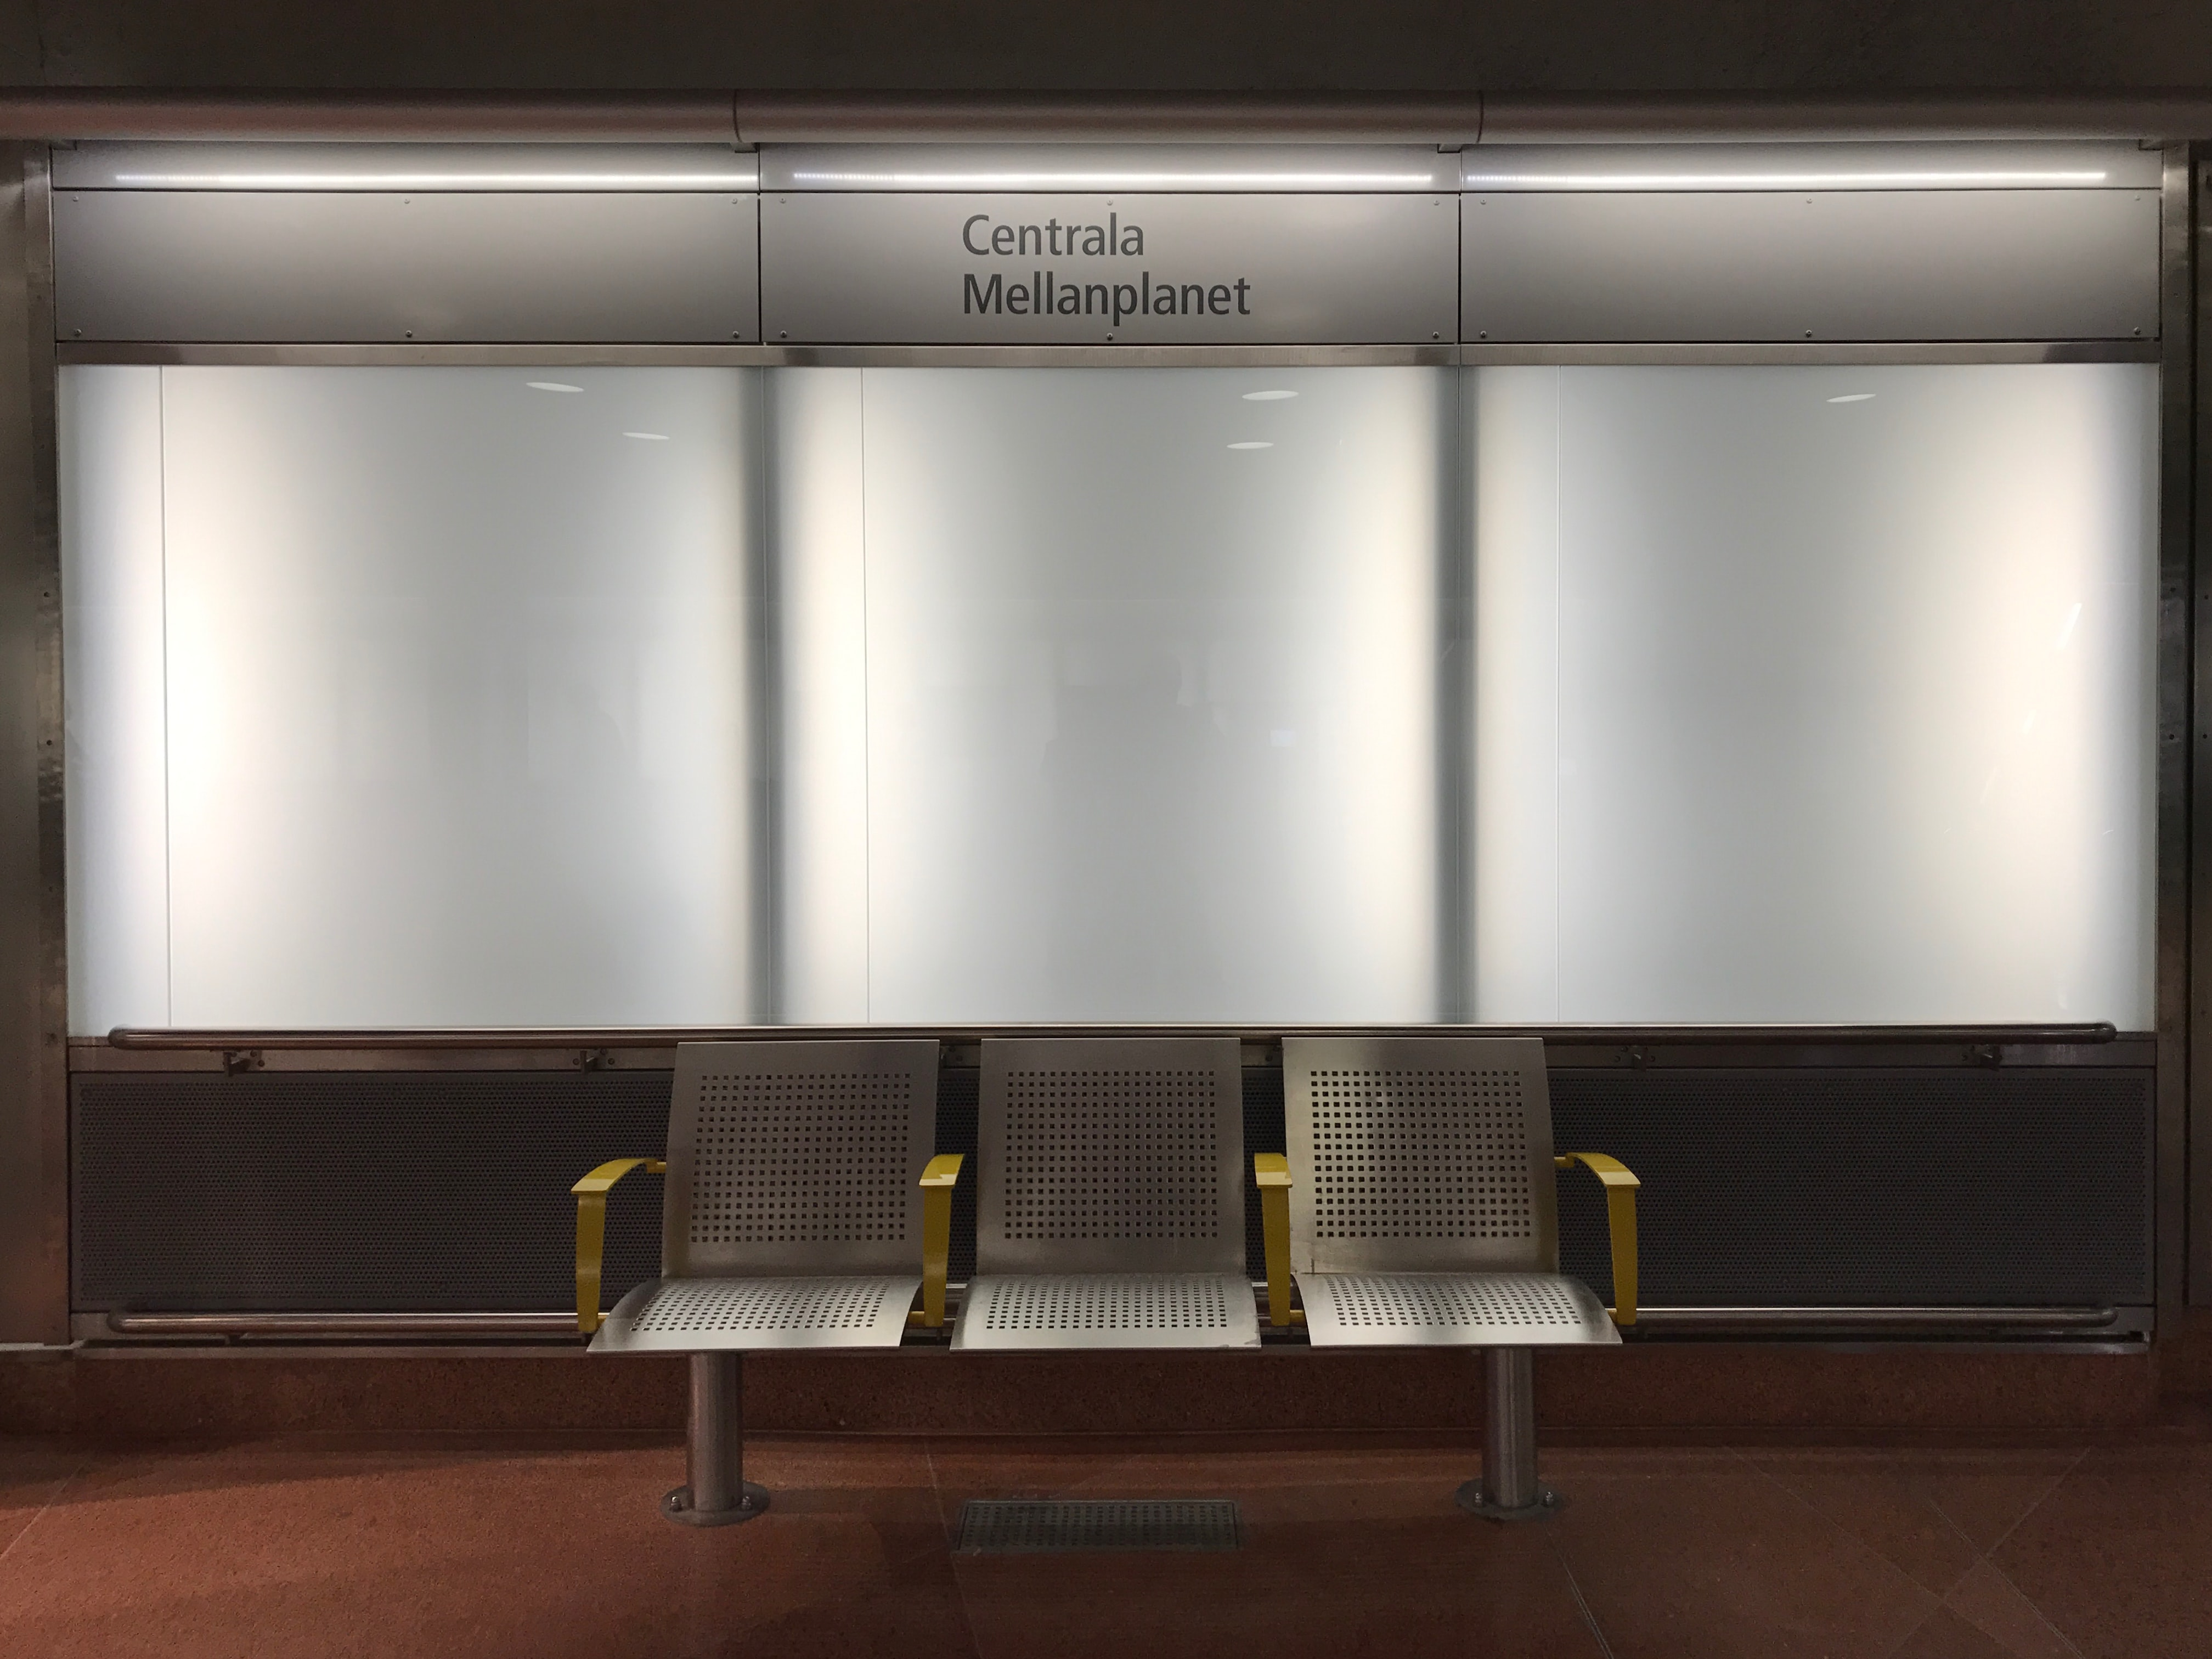 3-seat chair in front of lighted bulletin boards